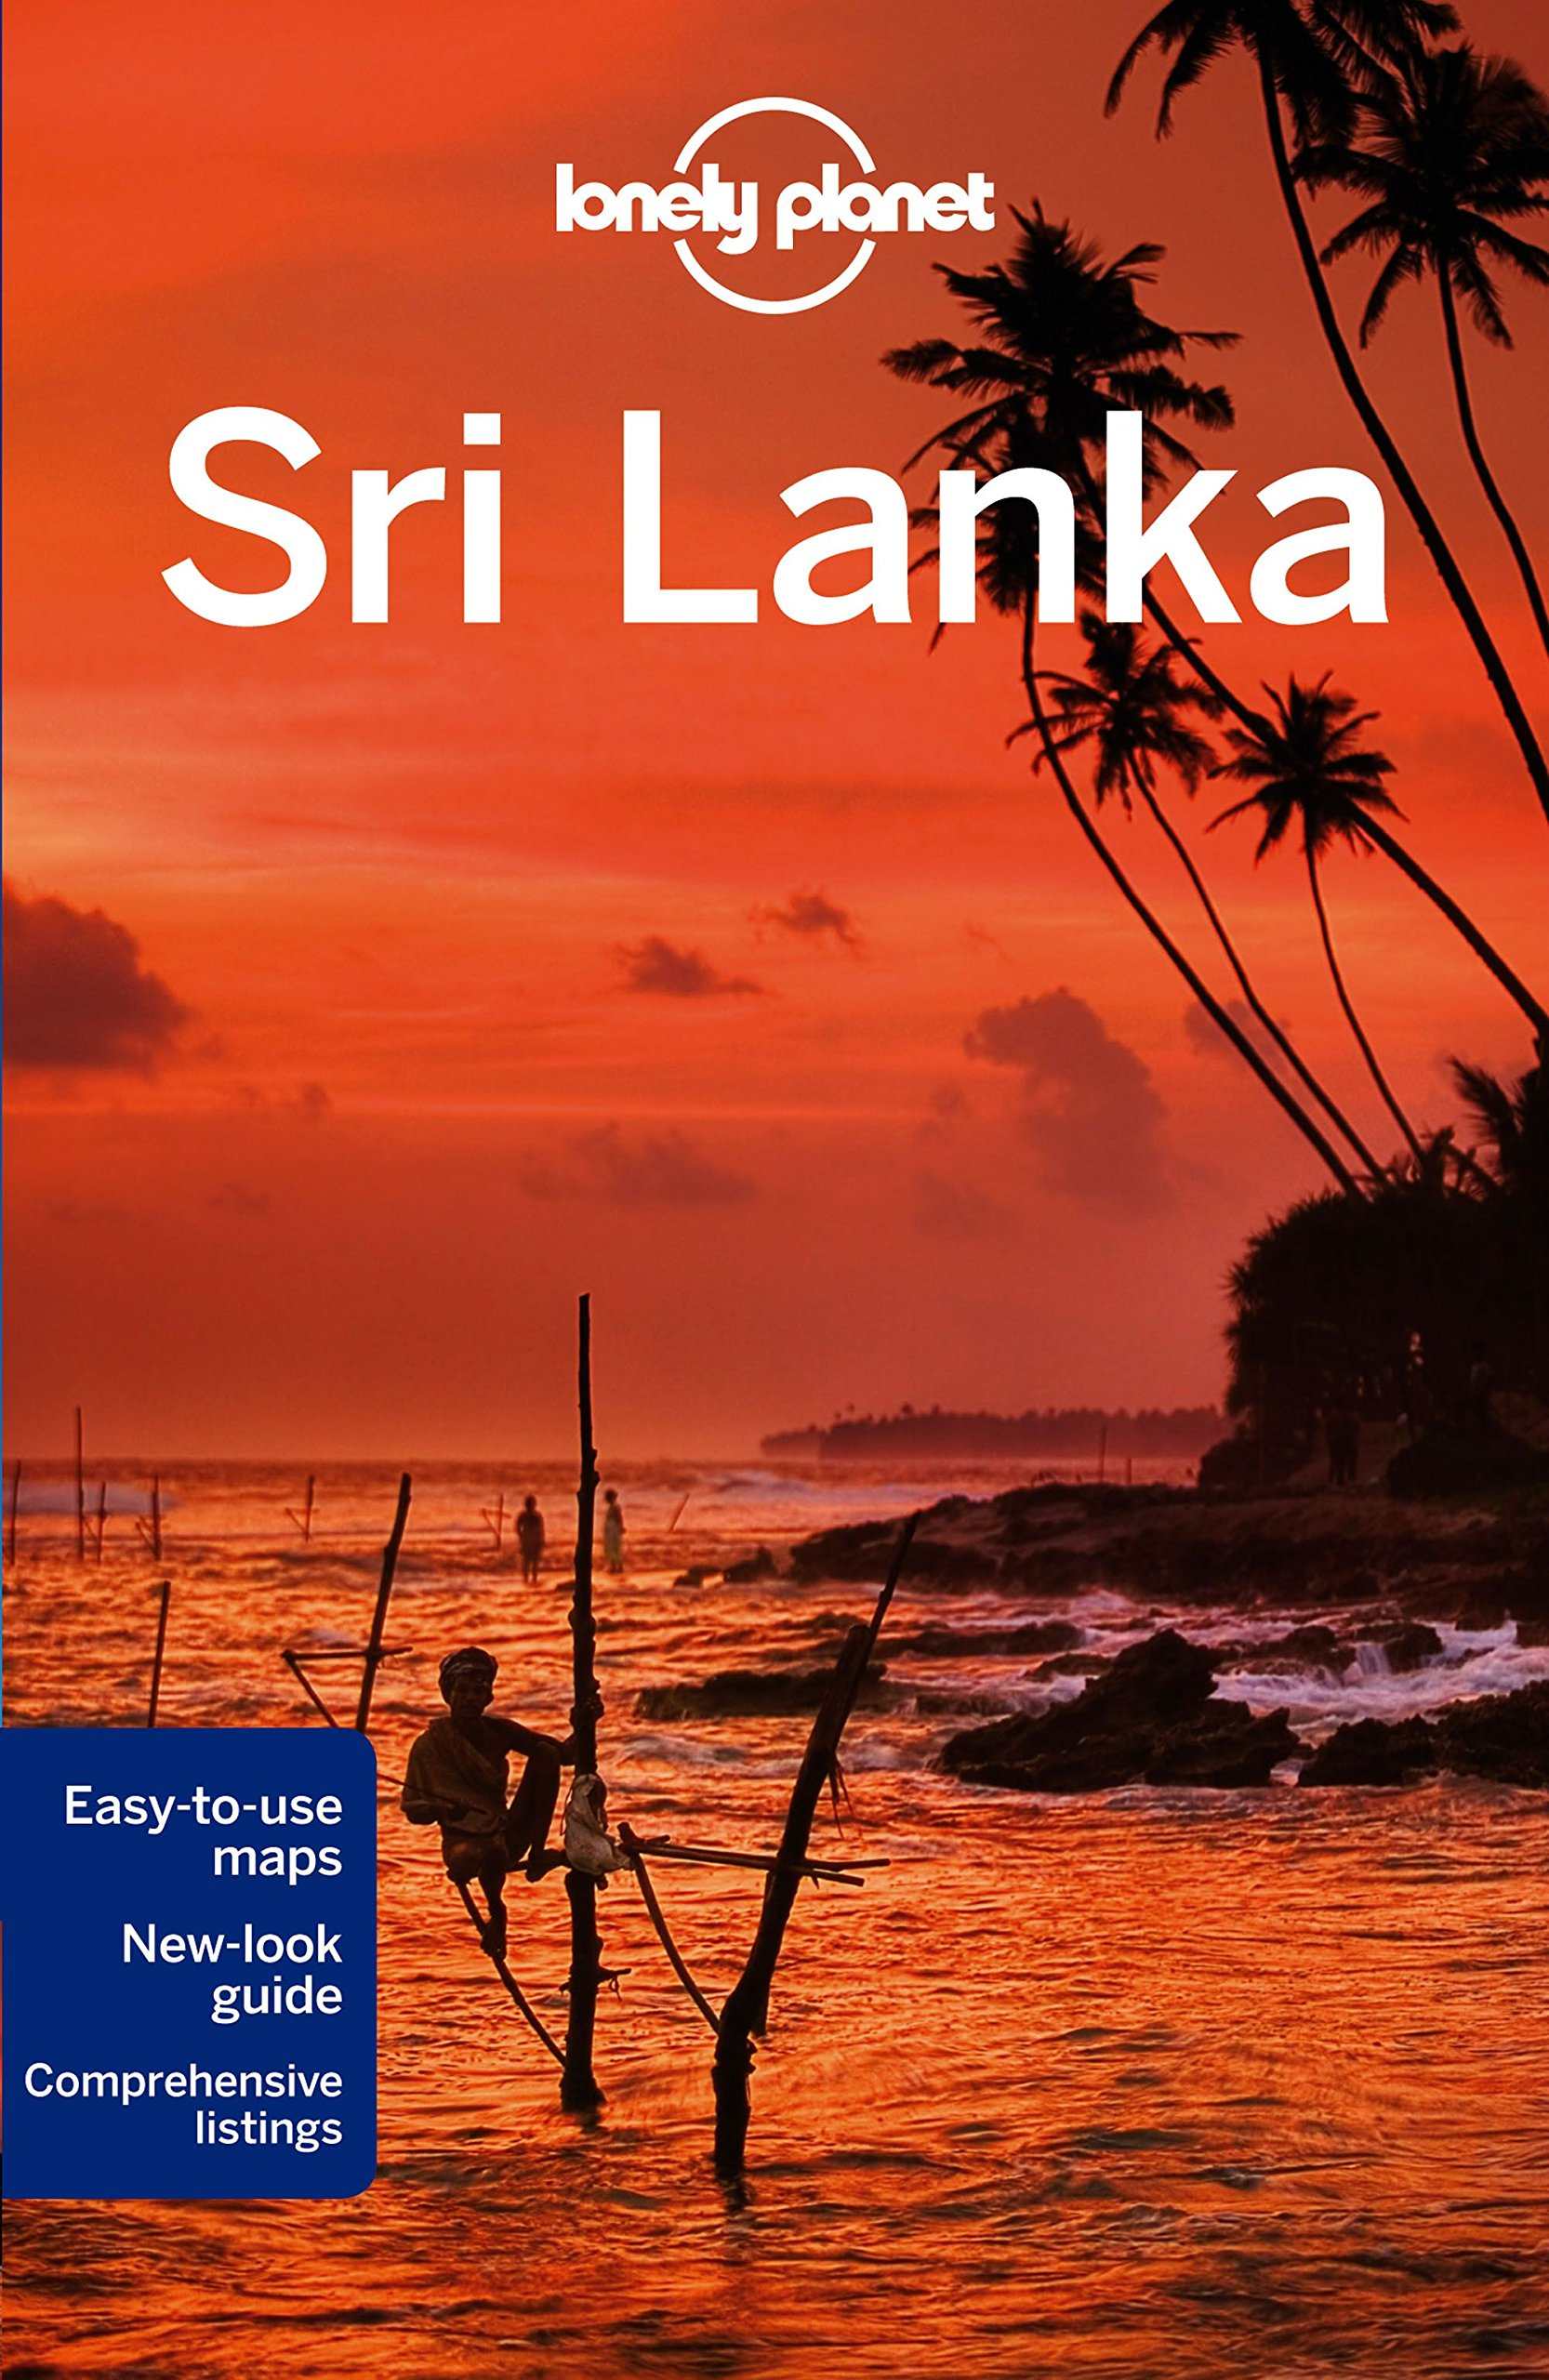 Lonely Planet Lanka Travel Guide